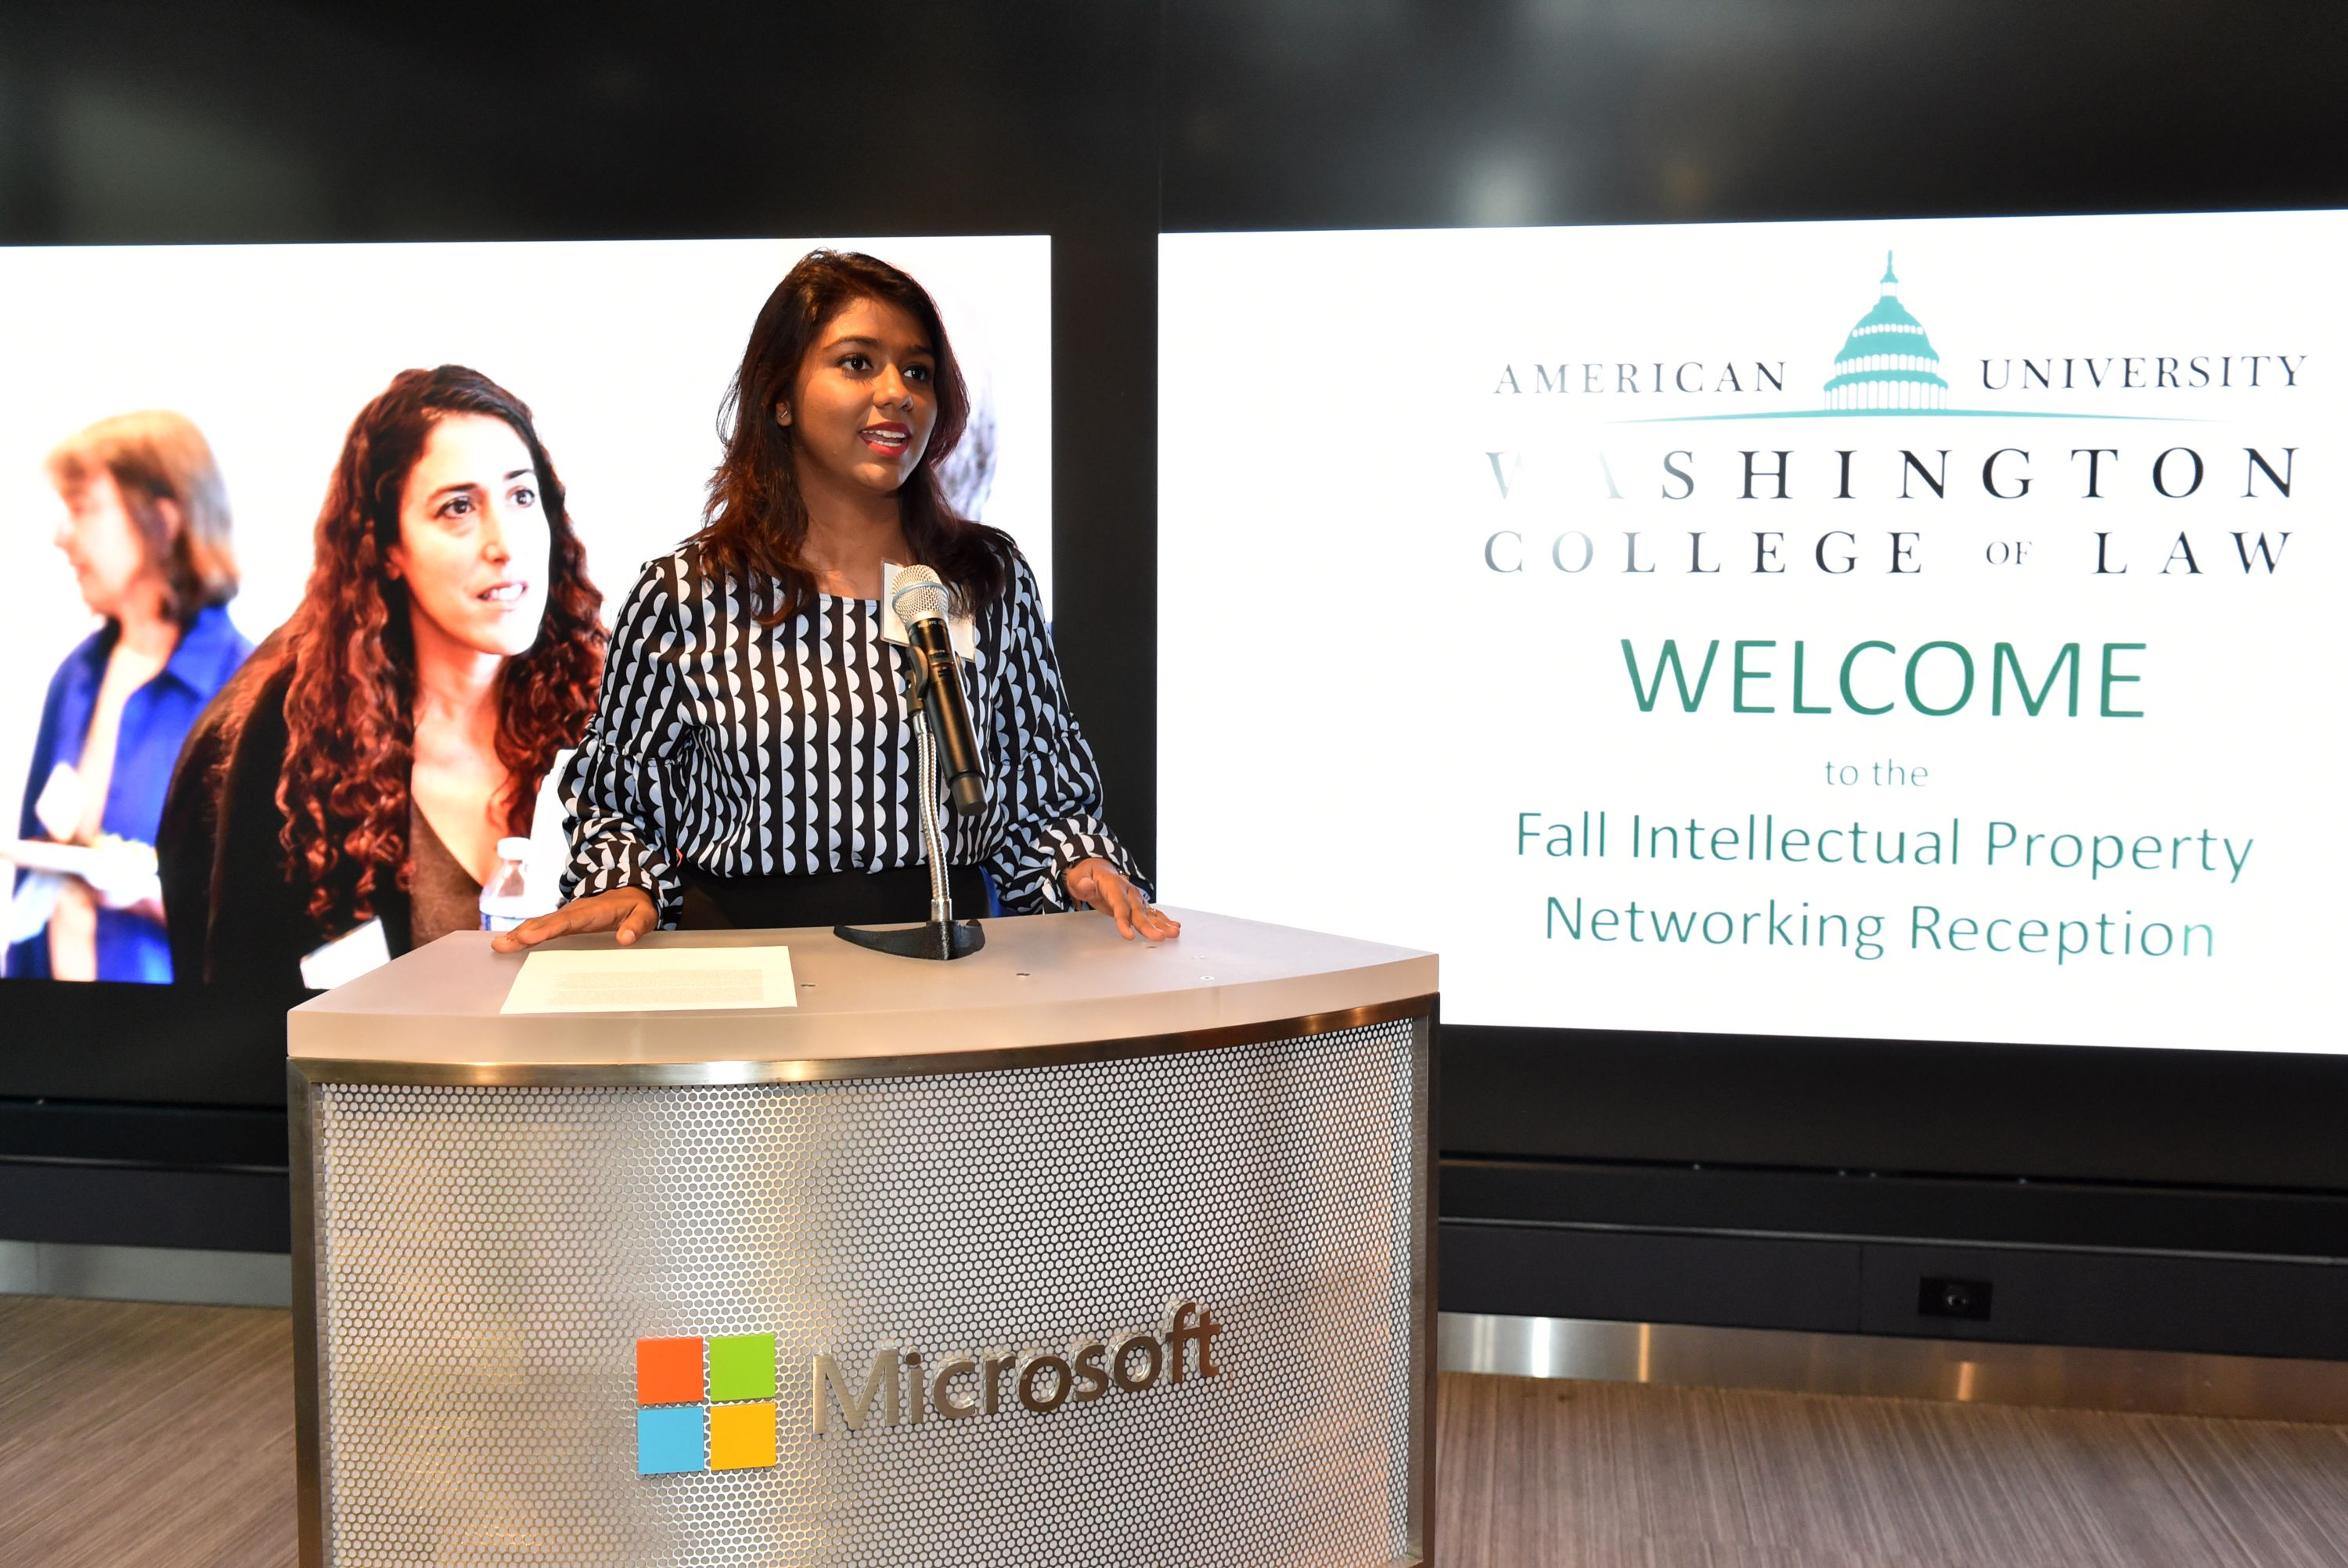 Annual WCL-Microsoft networking event